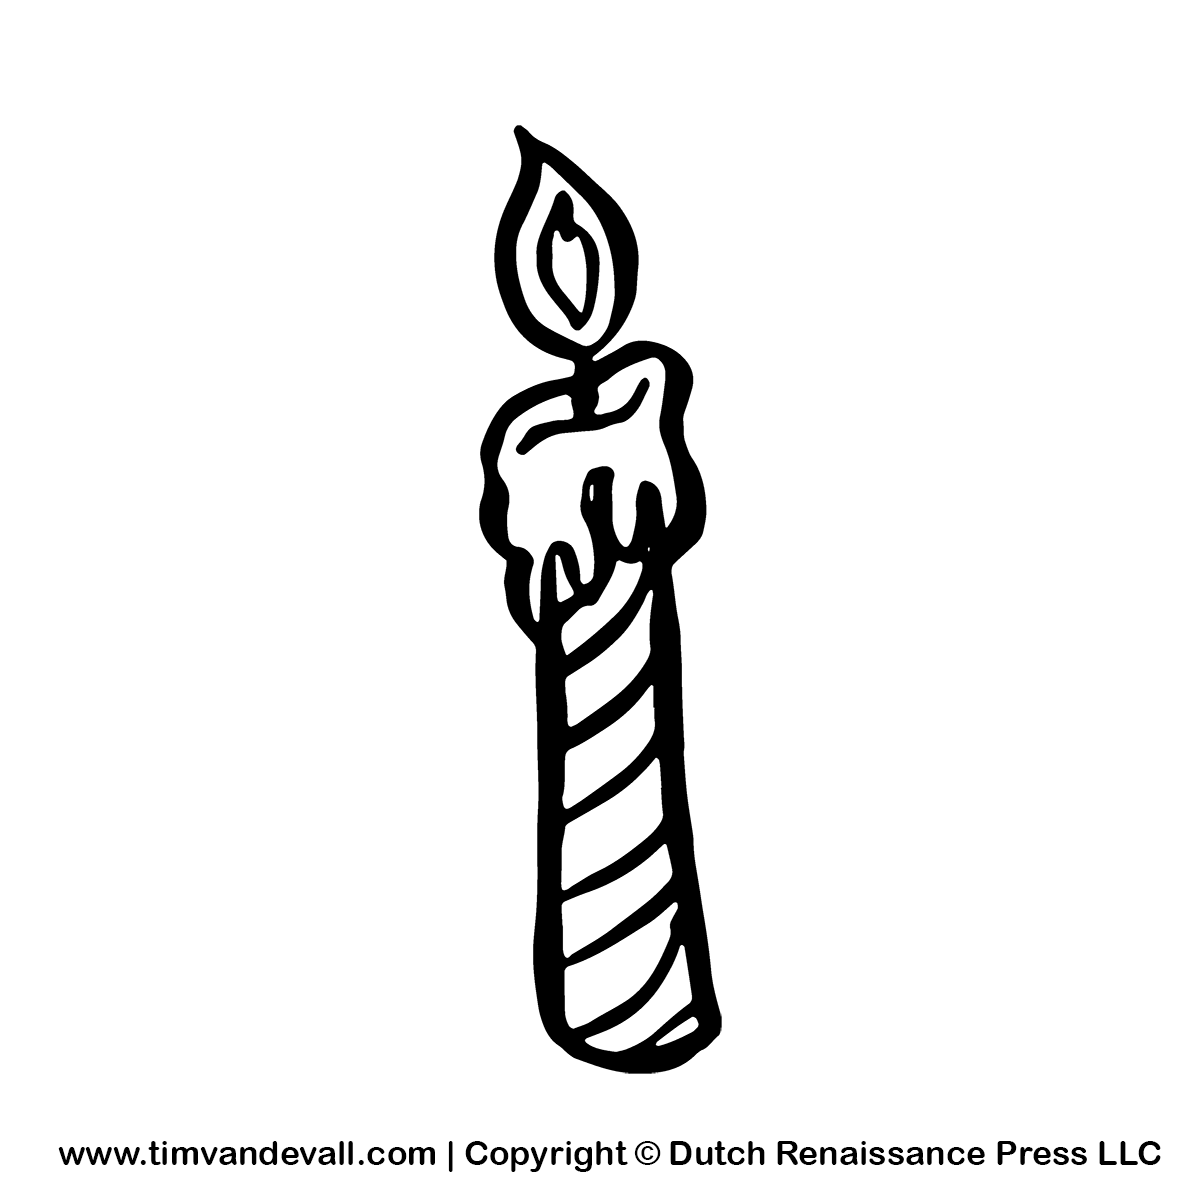 Free birthday candle clipart svg royalty free download Birthday Candle Clipart - Clipart Kid svg royalty free download